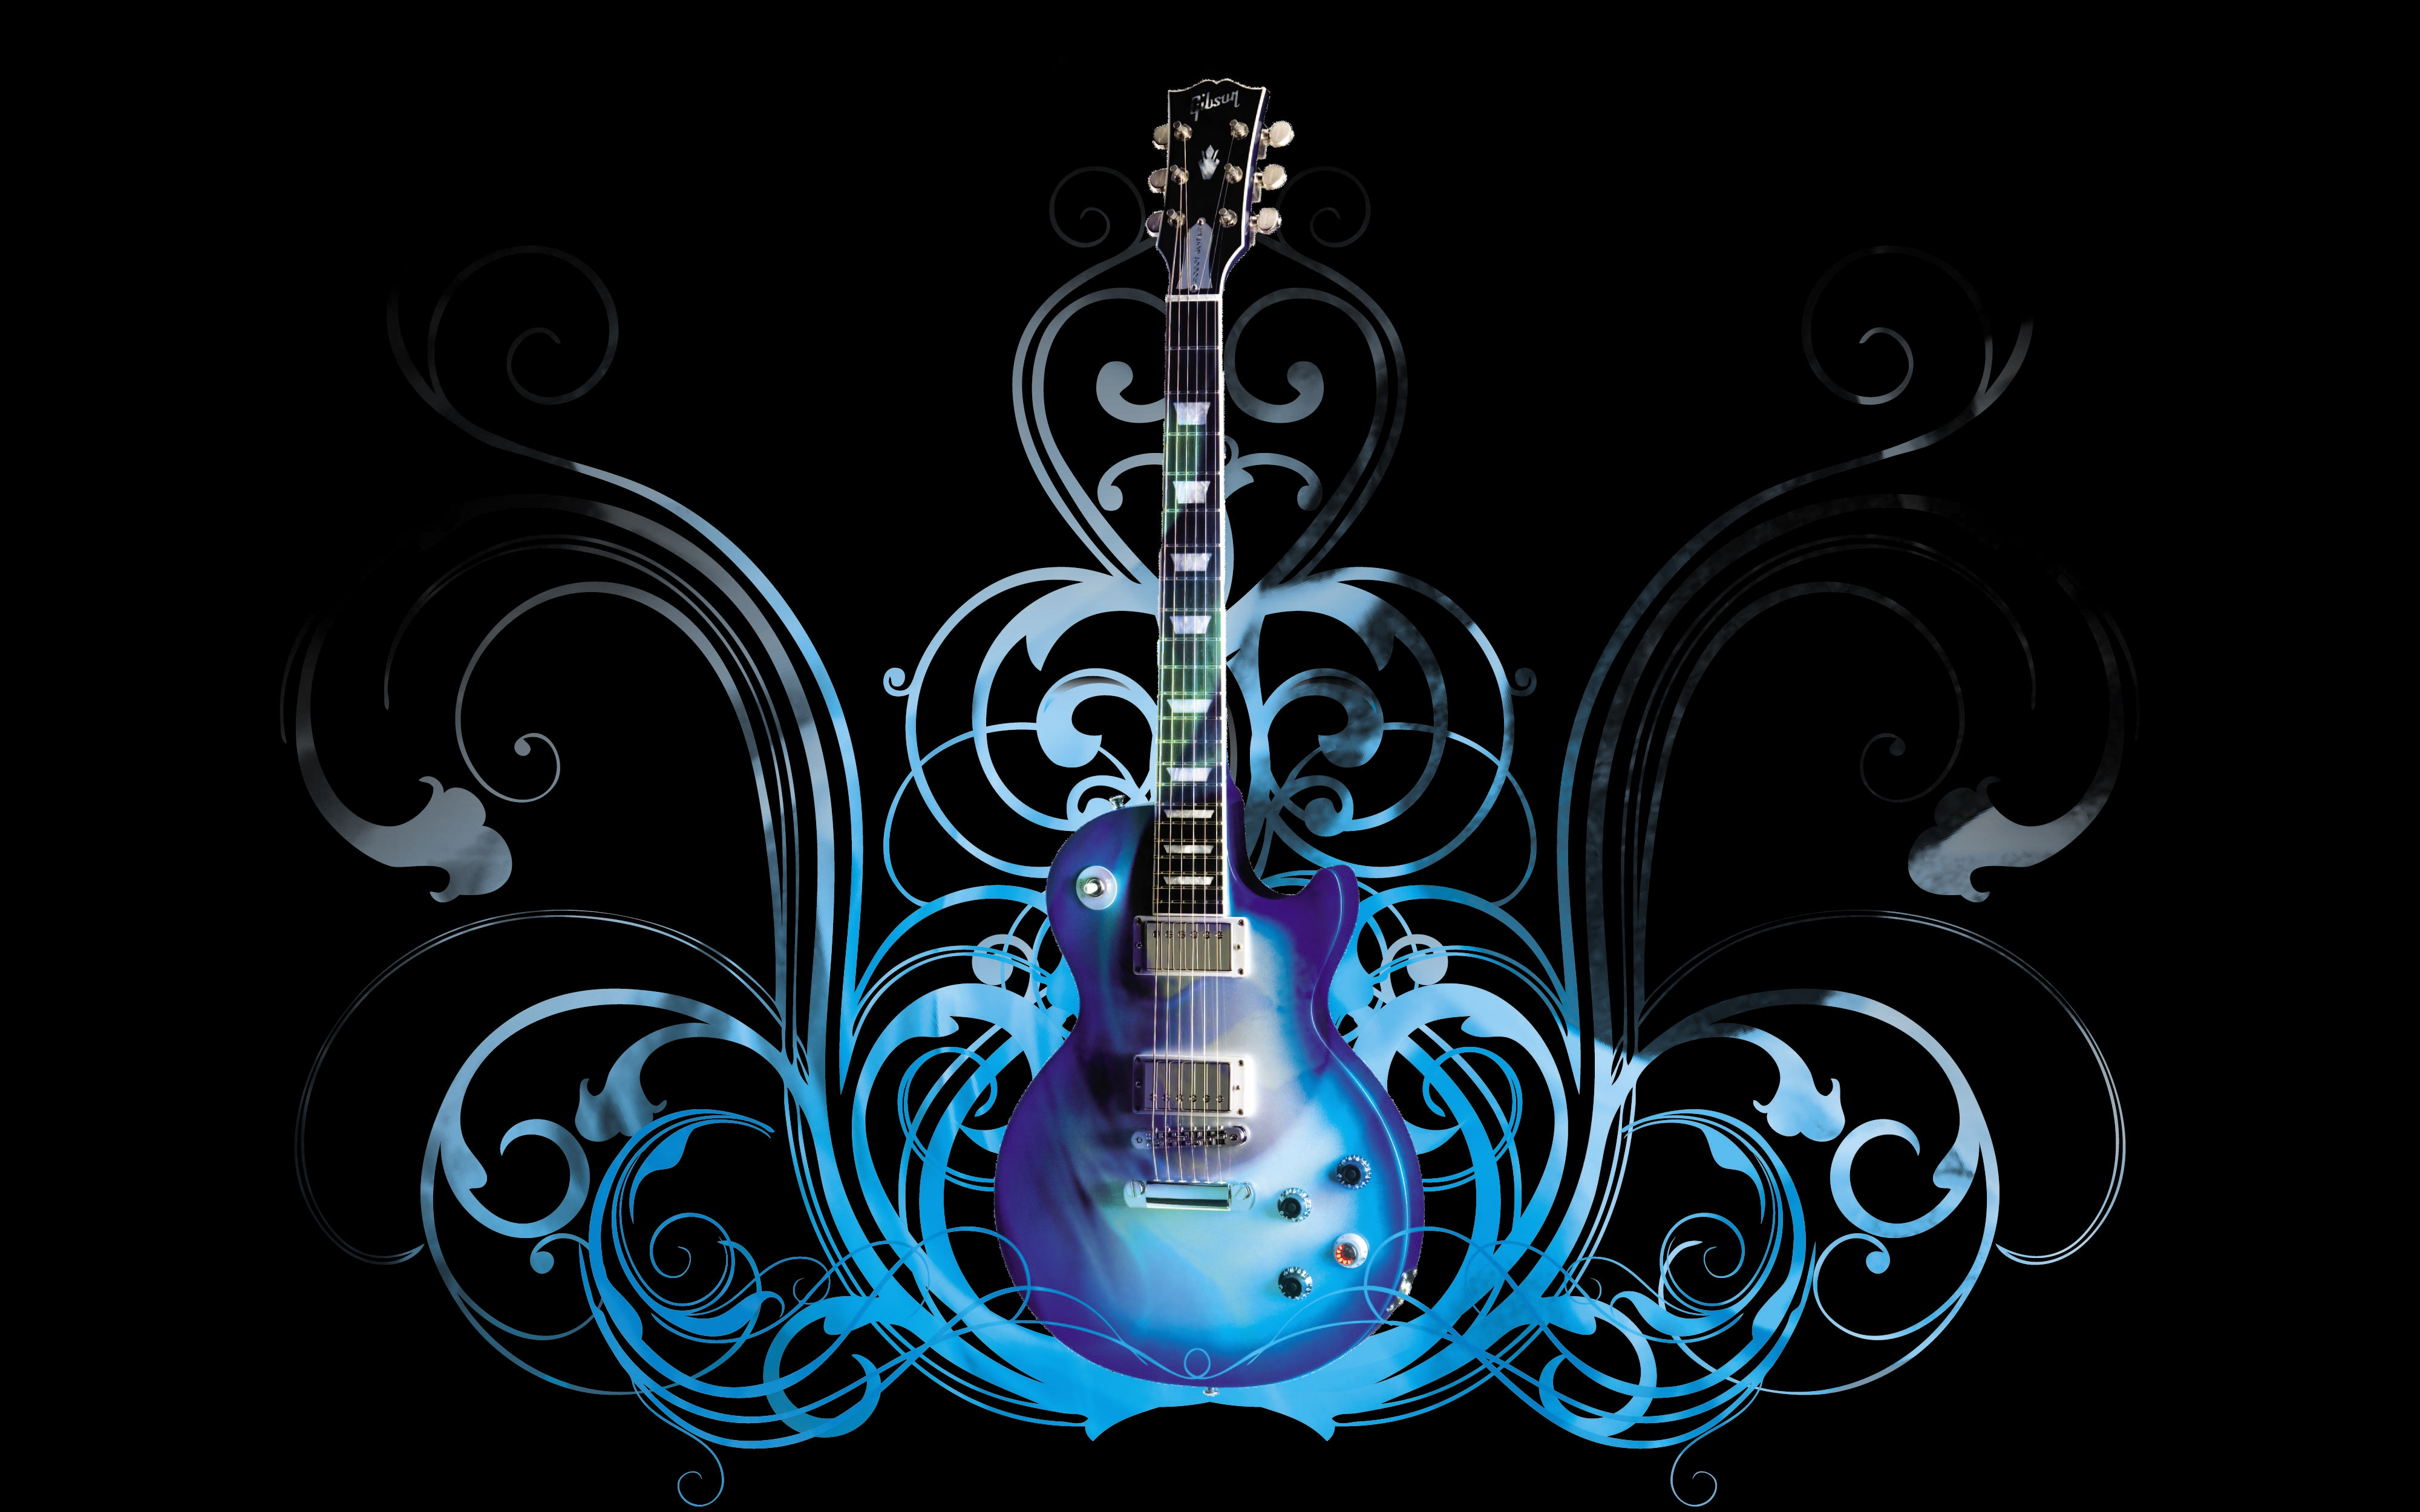 electric guitar art wallpaper fire - photo #33